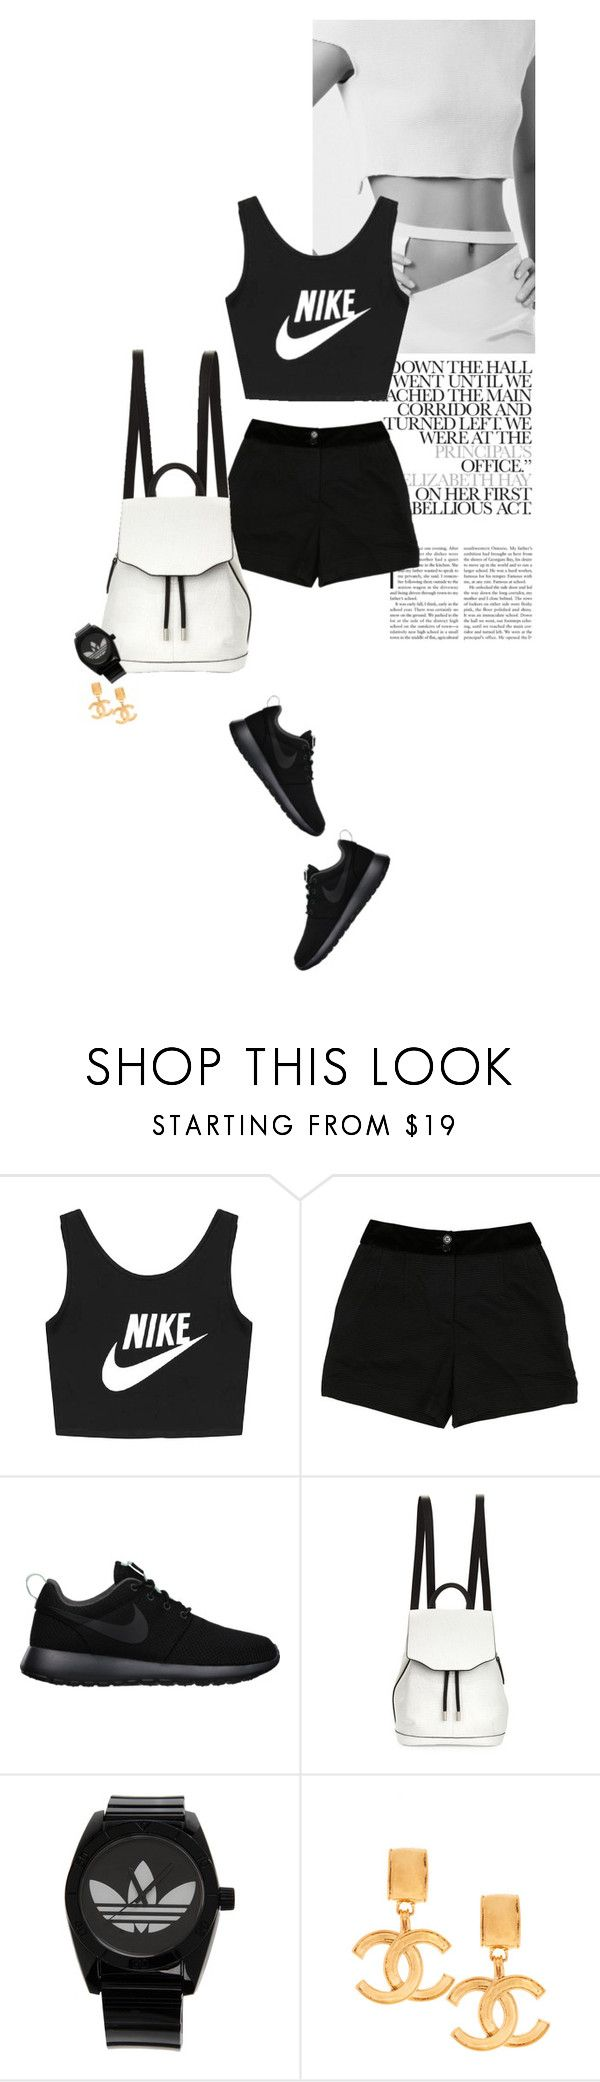 """""""sweat"""" by rosa-loves-skittles ❤ liked on Polyvore featuring NIKE, D&G, rag & bone, adidas and Susan Caplan Vintage"""